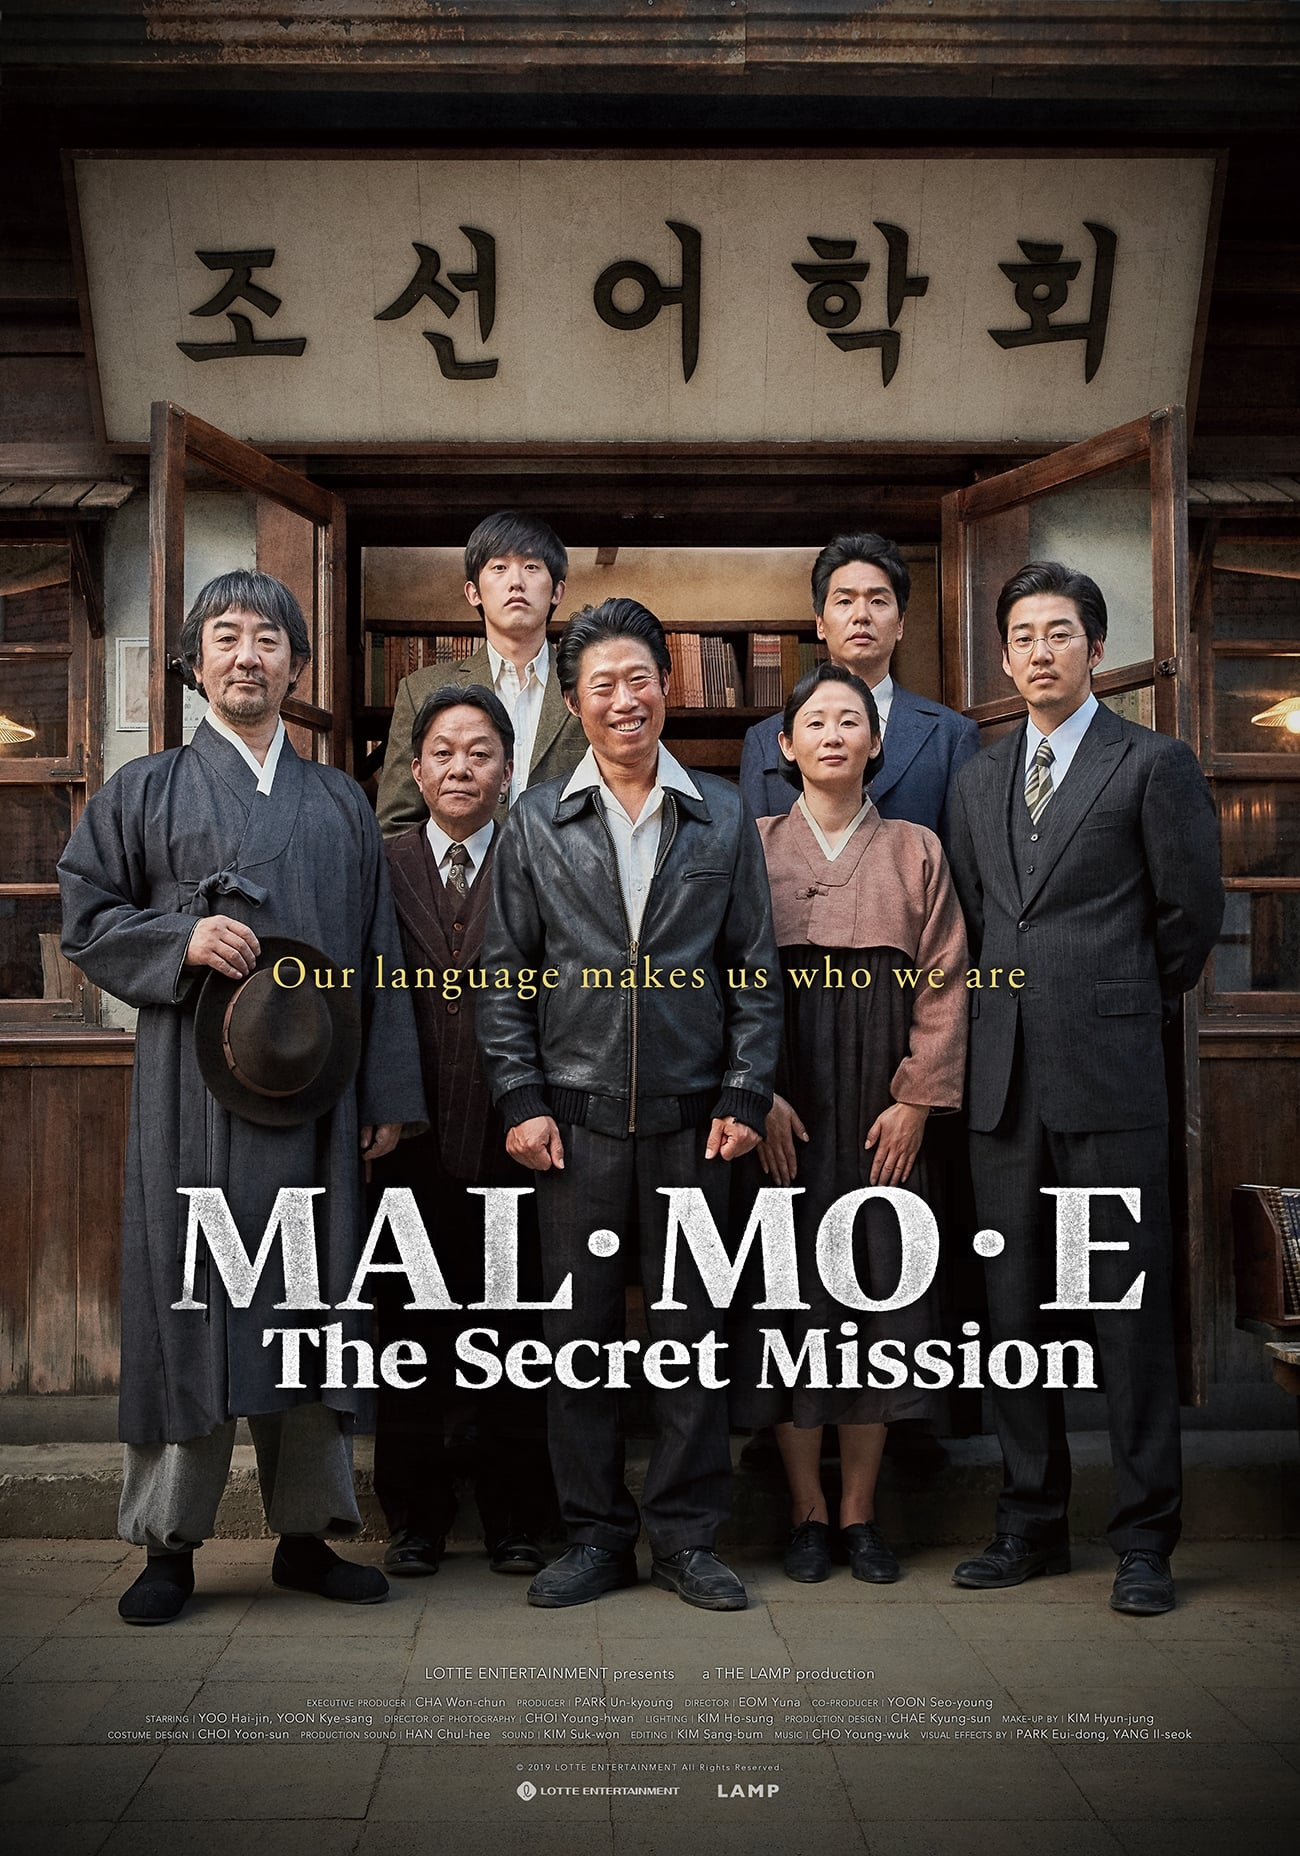 Malmoe: The Secret Mission